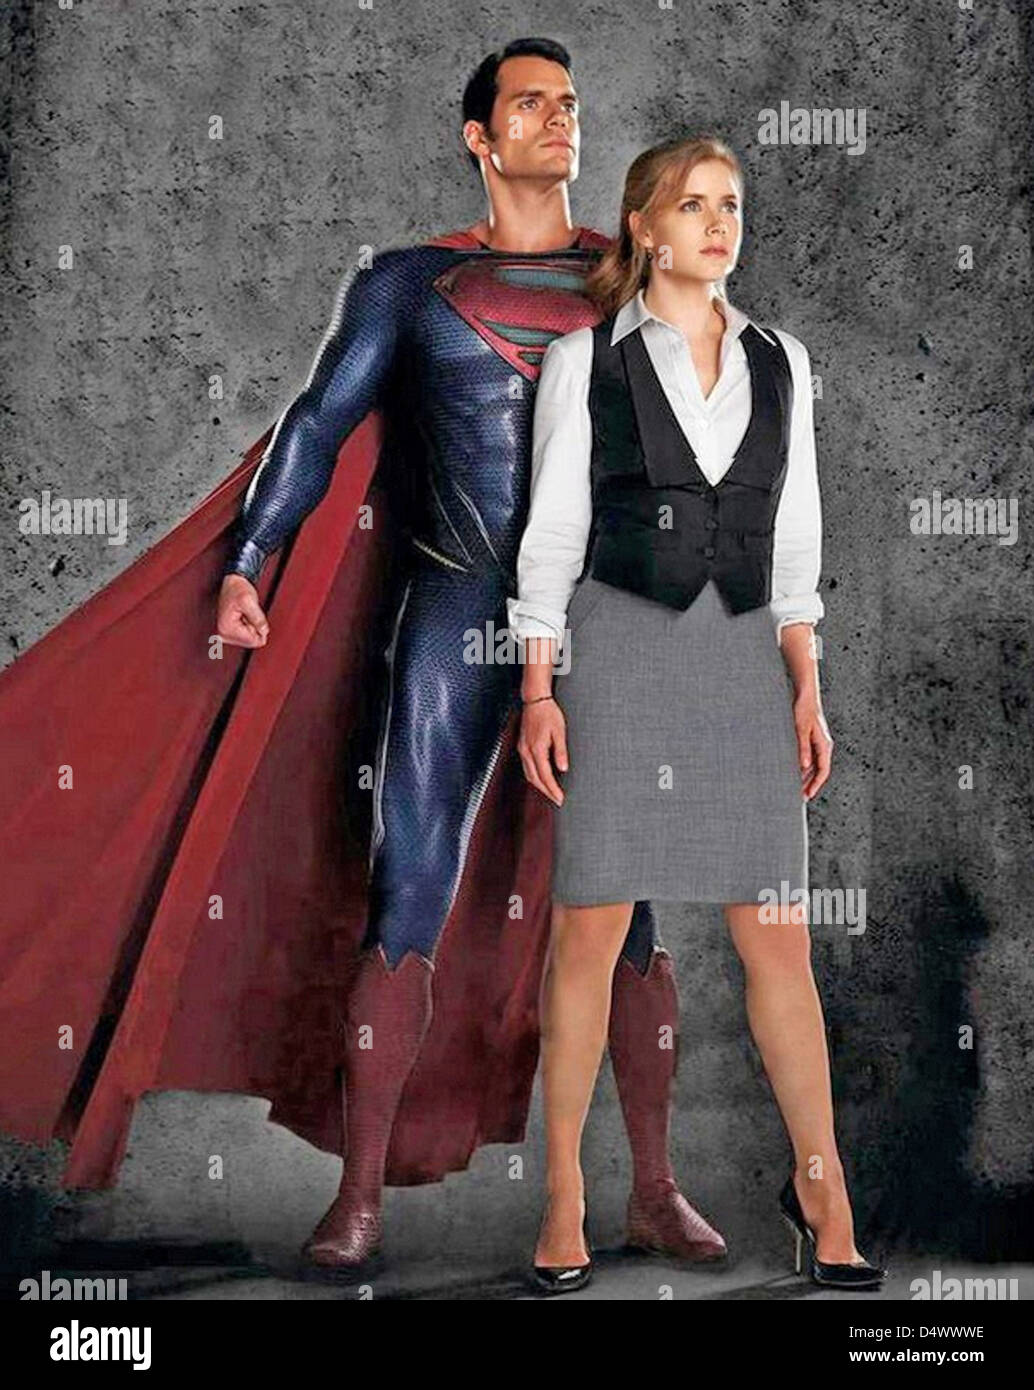 Lois Lane Man Of Steel Outfit